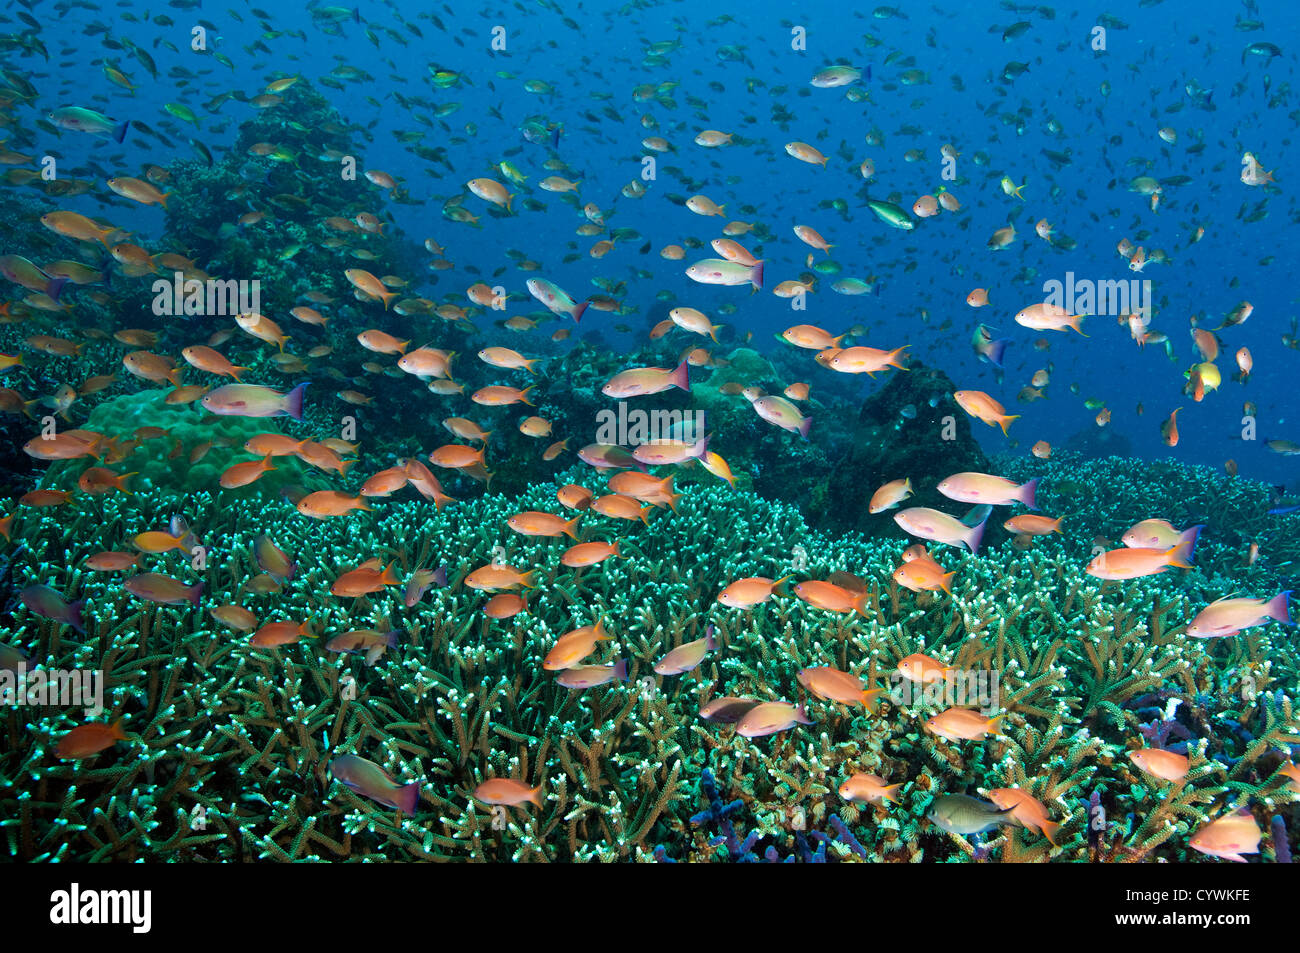 Reef scenic with Acropora corals and scalefin anthiases, Pseudanthias squamipinnis, Komodo Indonesia Stock Photo